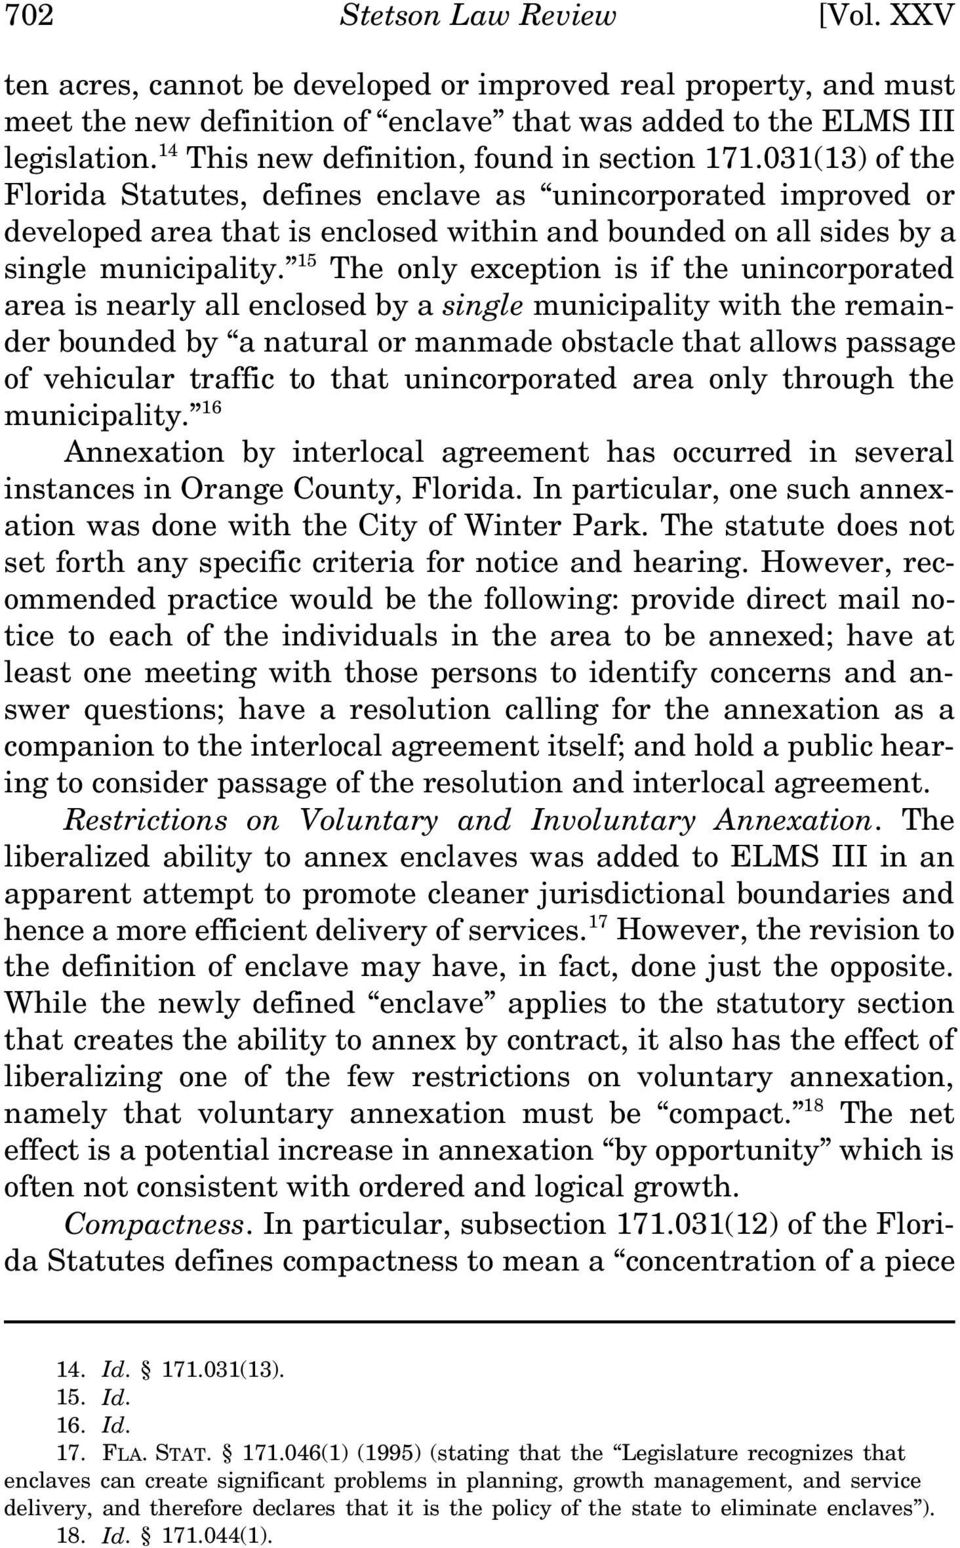 031(13) of the Florida Statutes, defines enclave as unincorporated improved or developed area that is enclosed within and bounded on all sides by a single municipality.